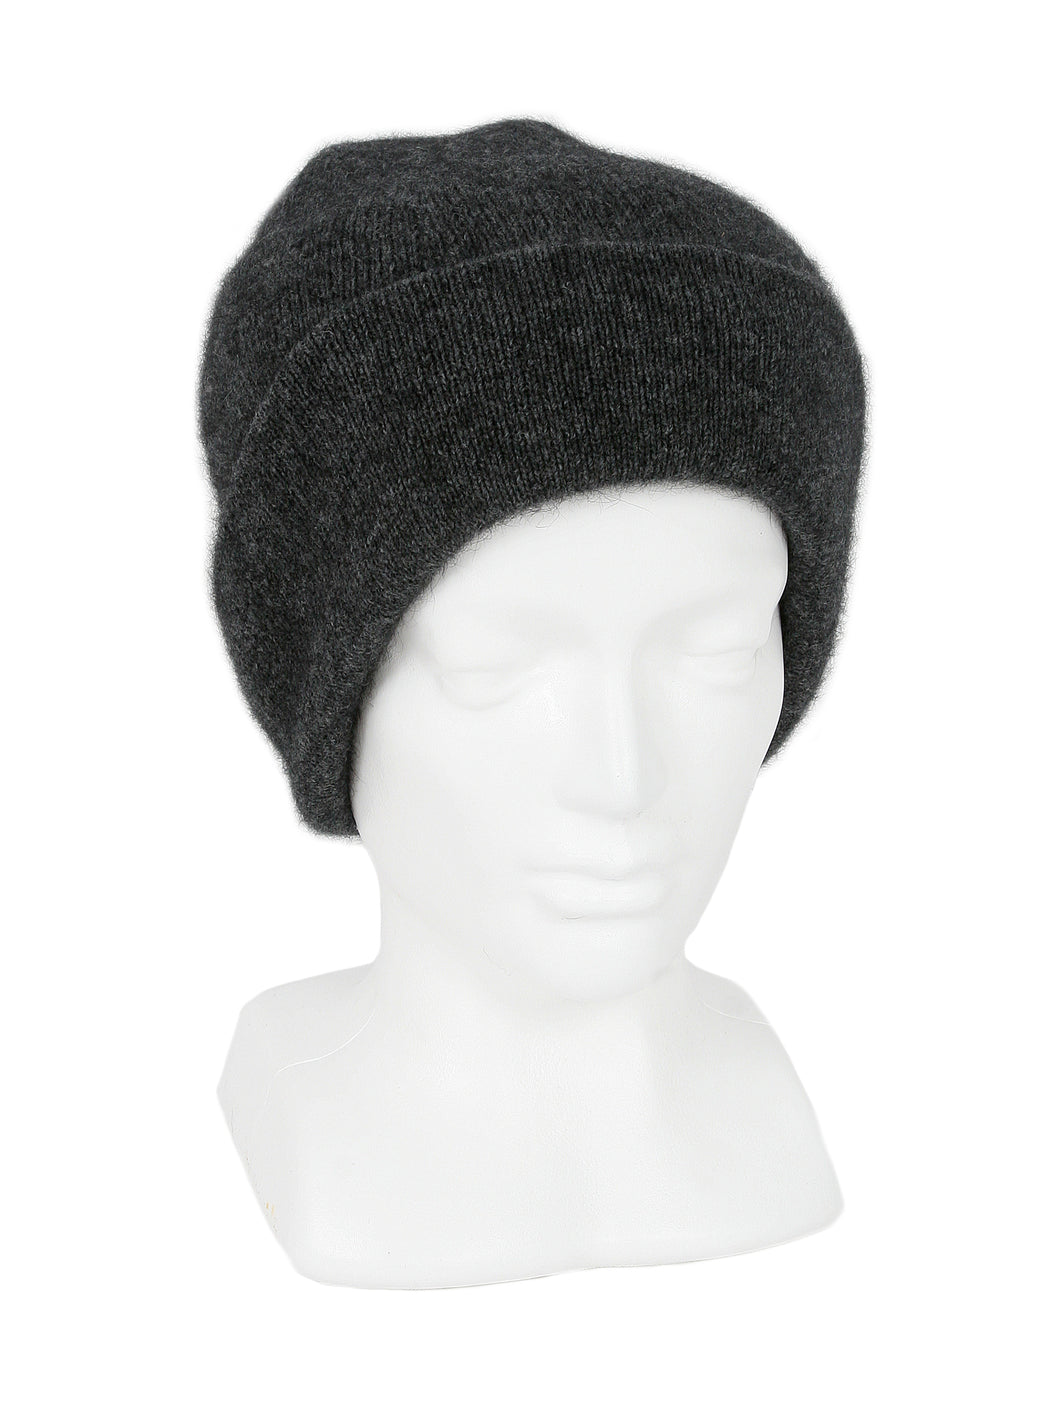 Merino Possum Plain Beanie charcoal